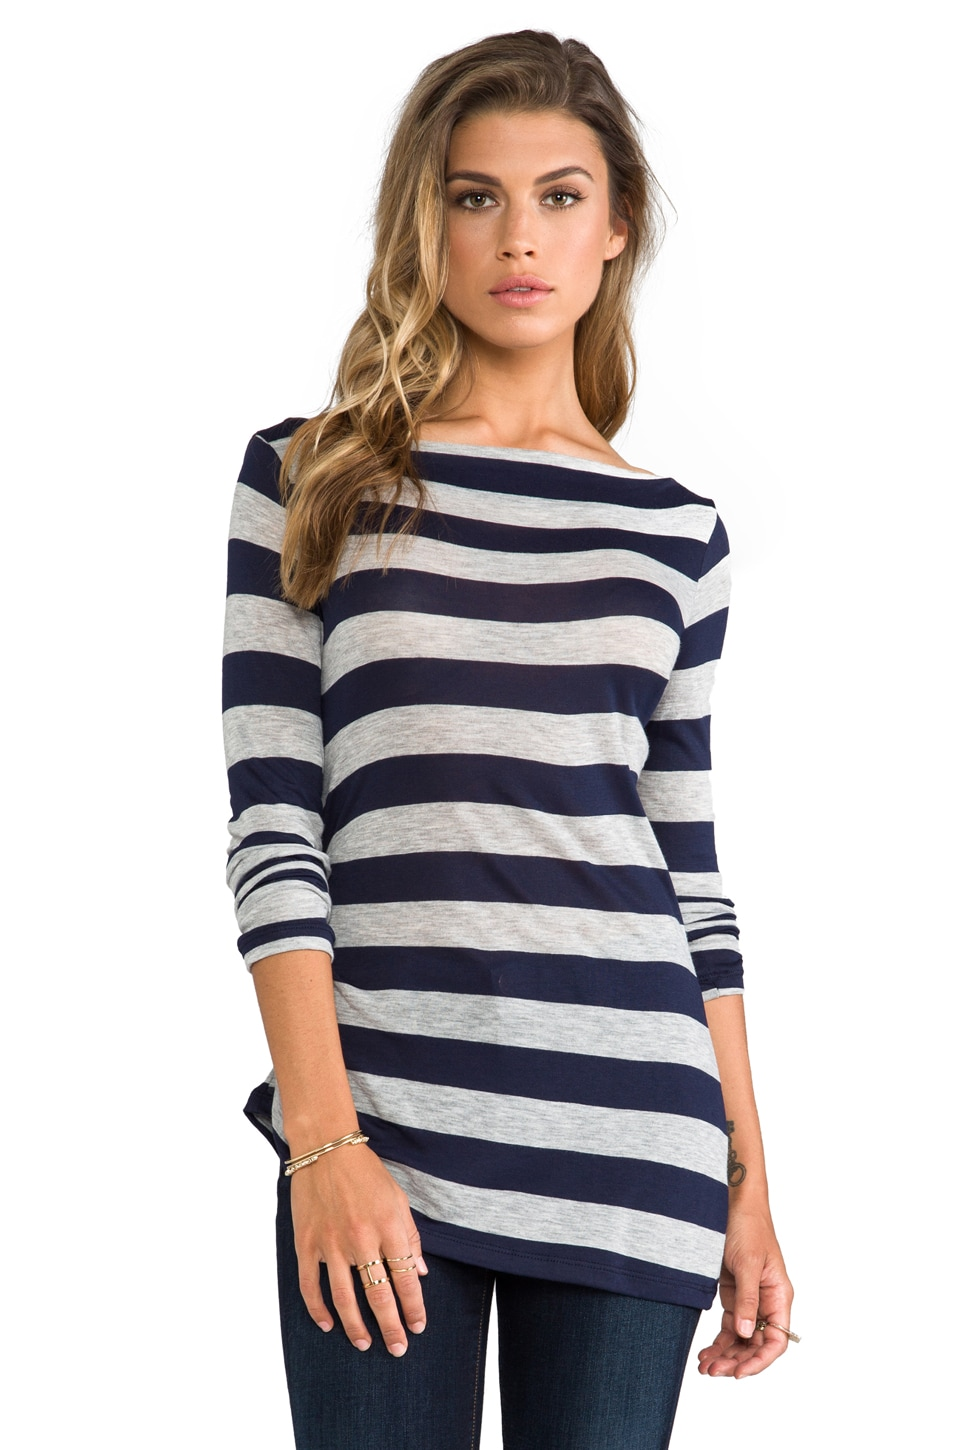 James Perse Tucked Stripe Top in Navy/Heather Grey